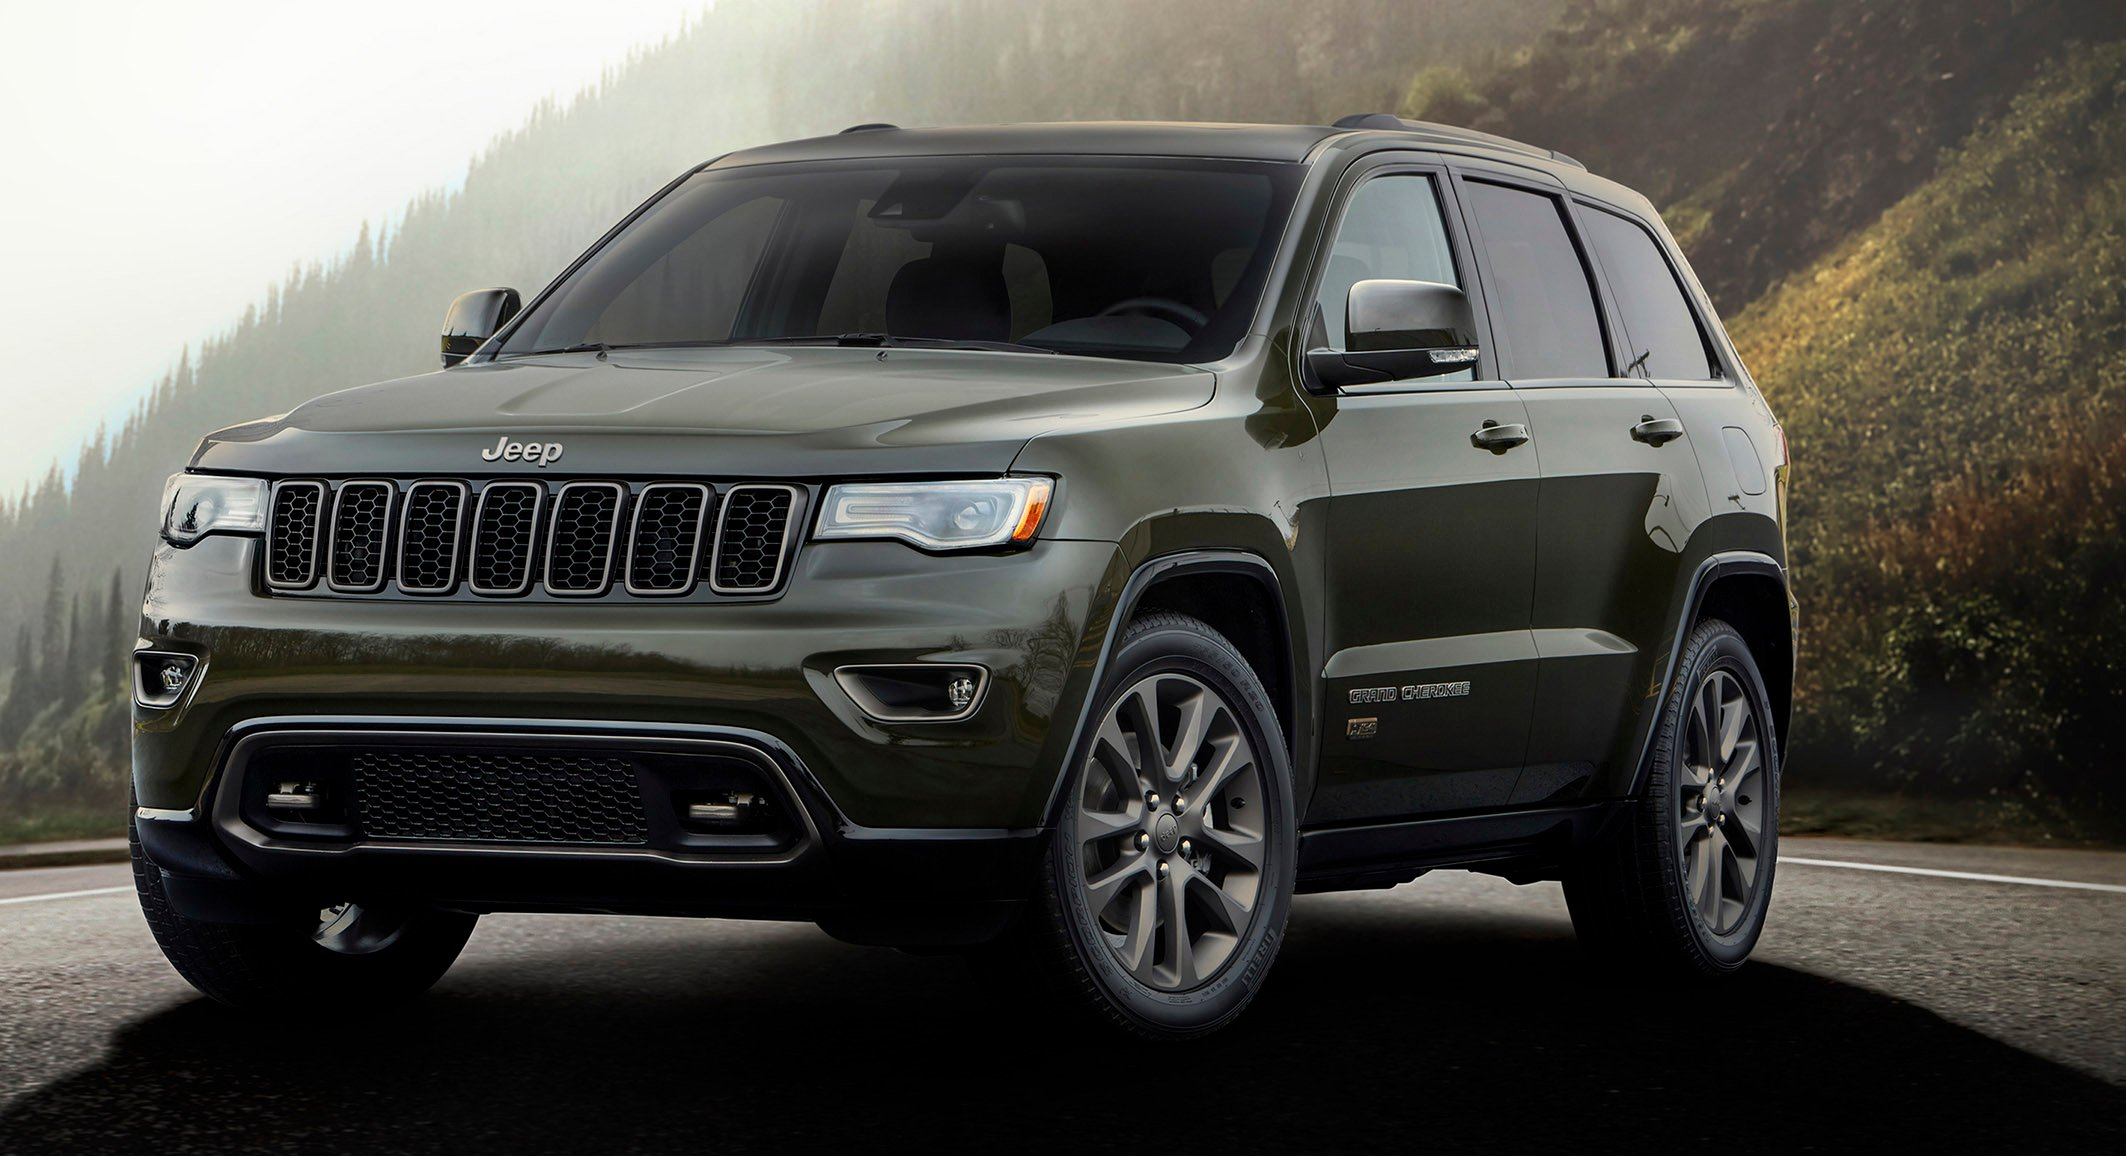 Jeep 75th Anniversary models revealed, Australian launch confirmed - photos | CarAdvice